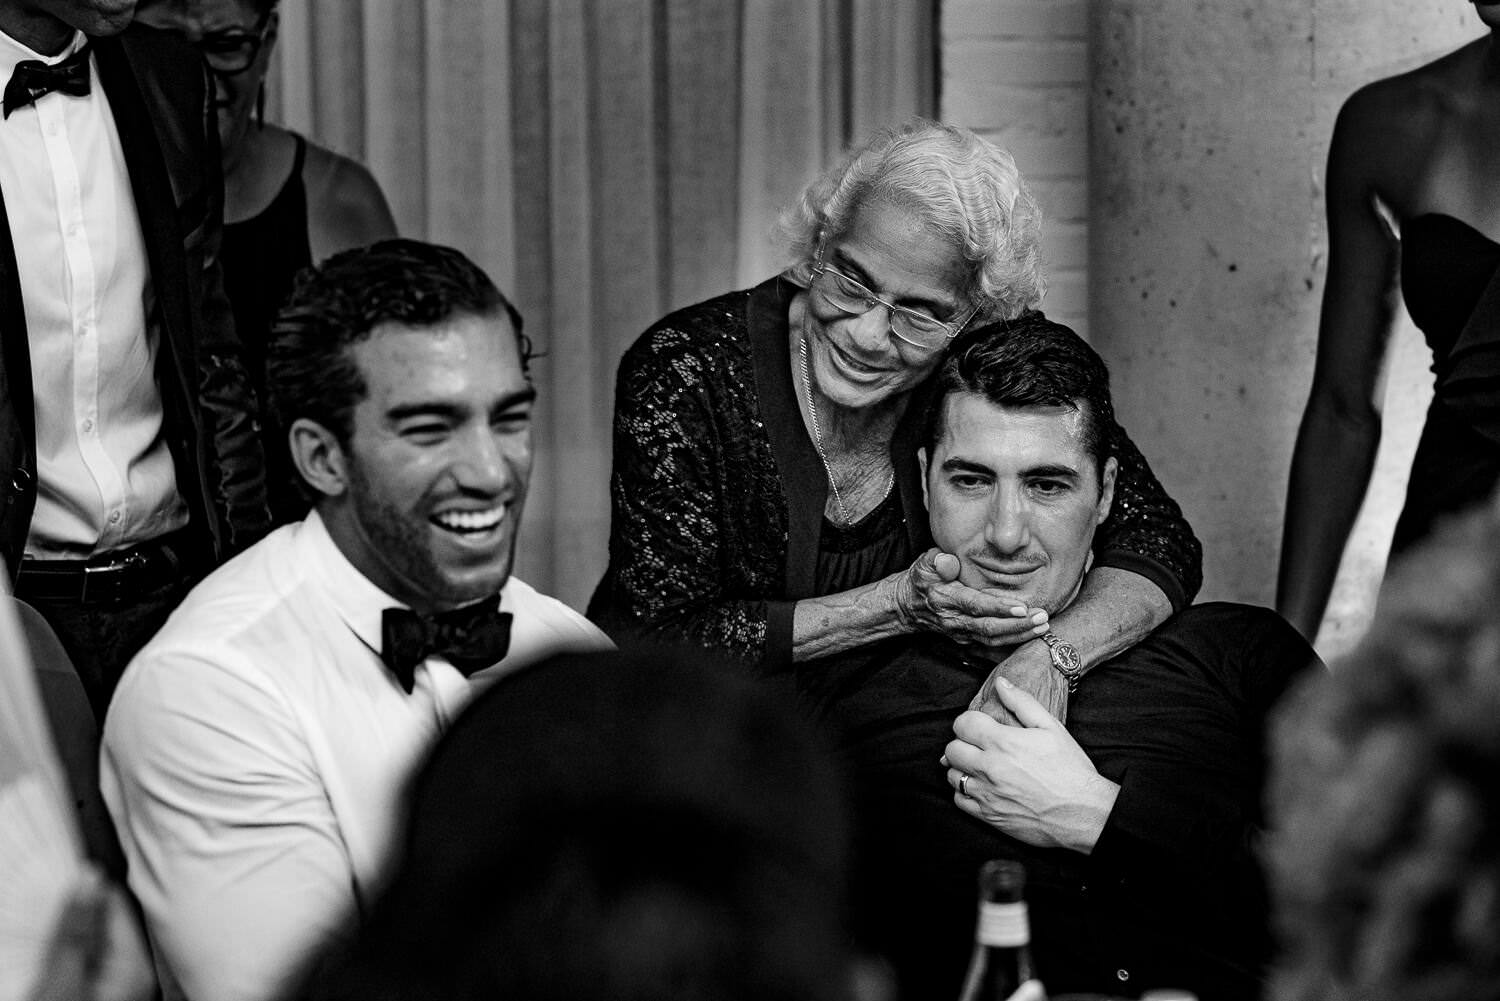 Grandma hugging the groom at dinner party at Soho House Barcelona